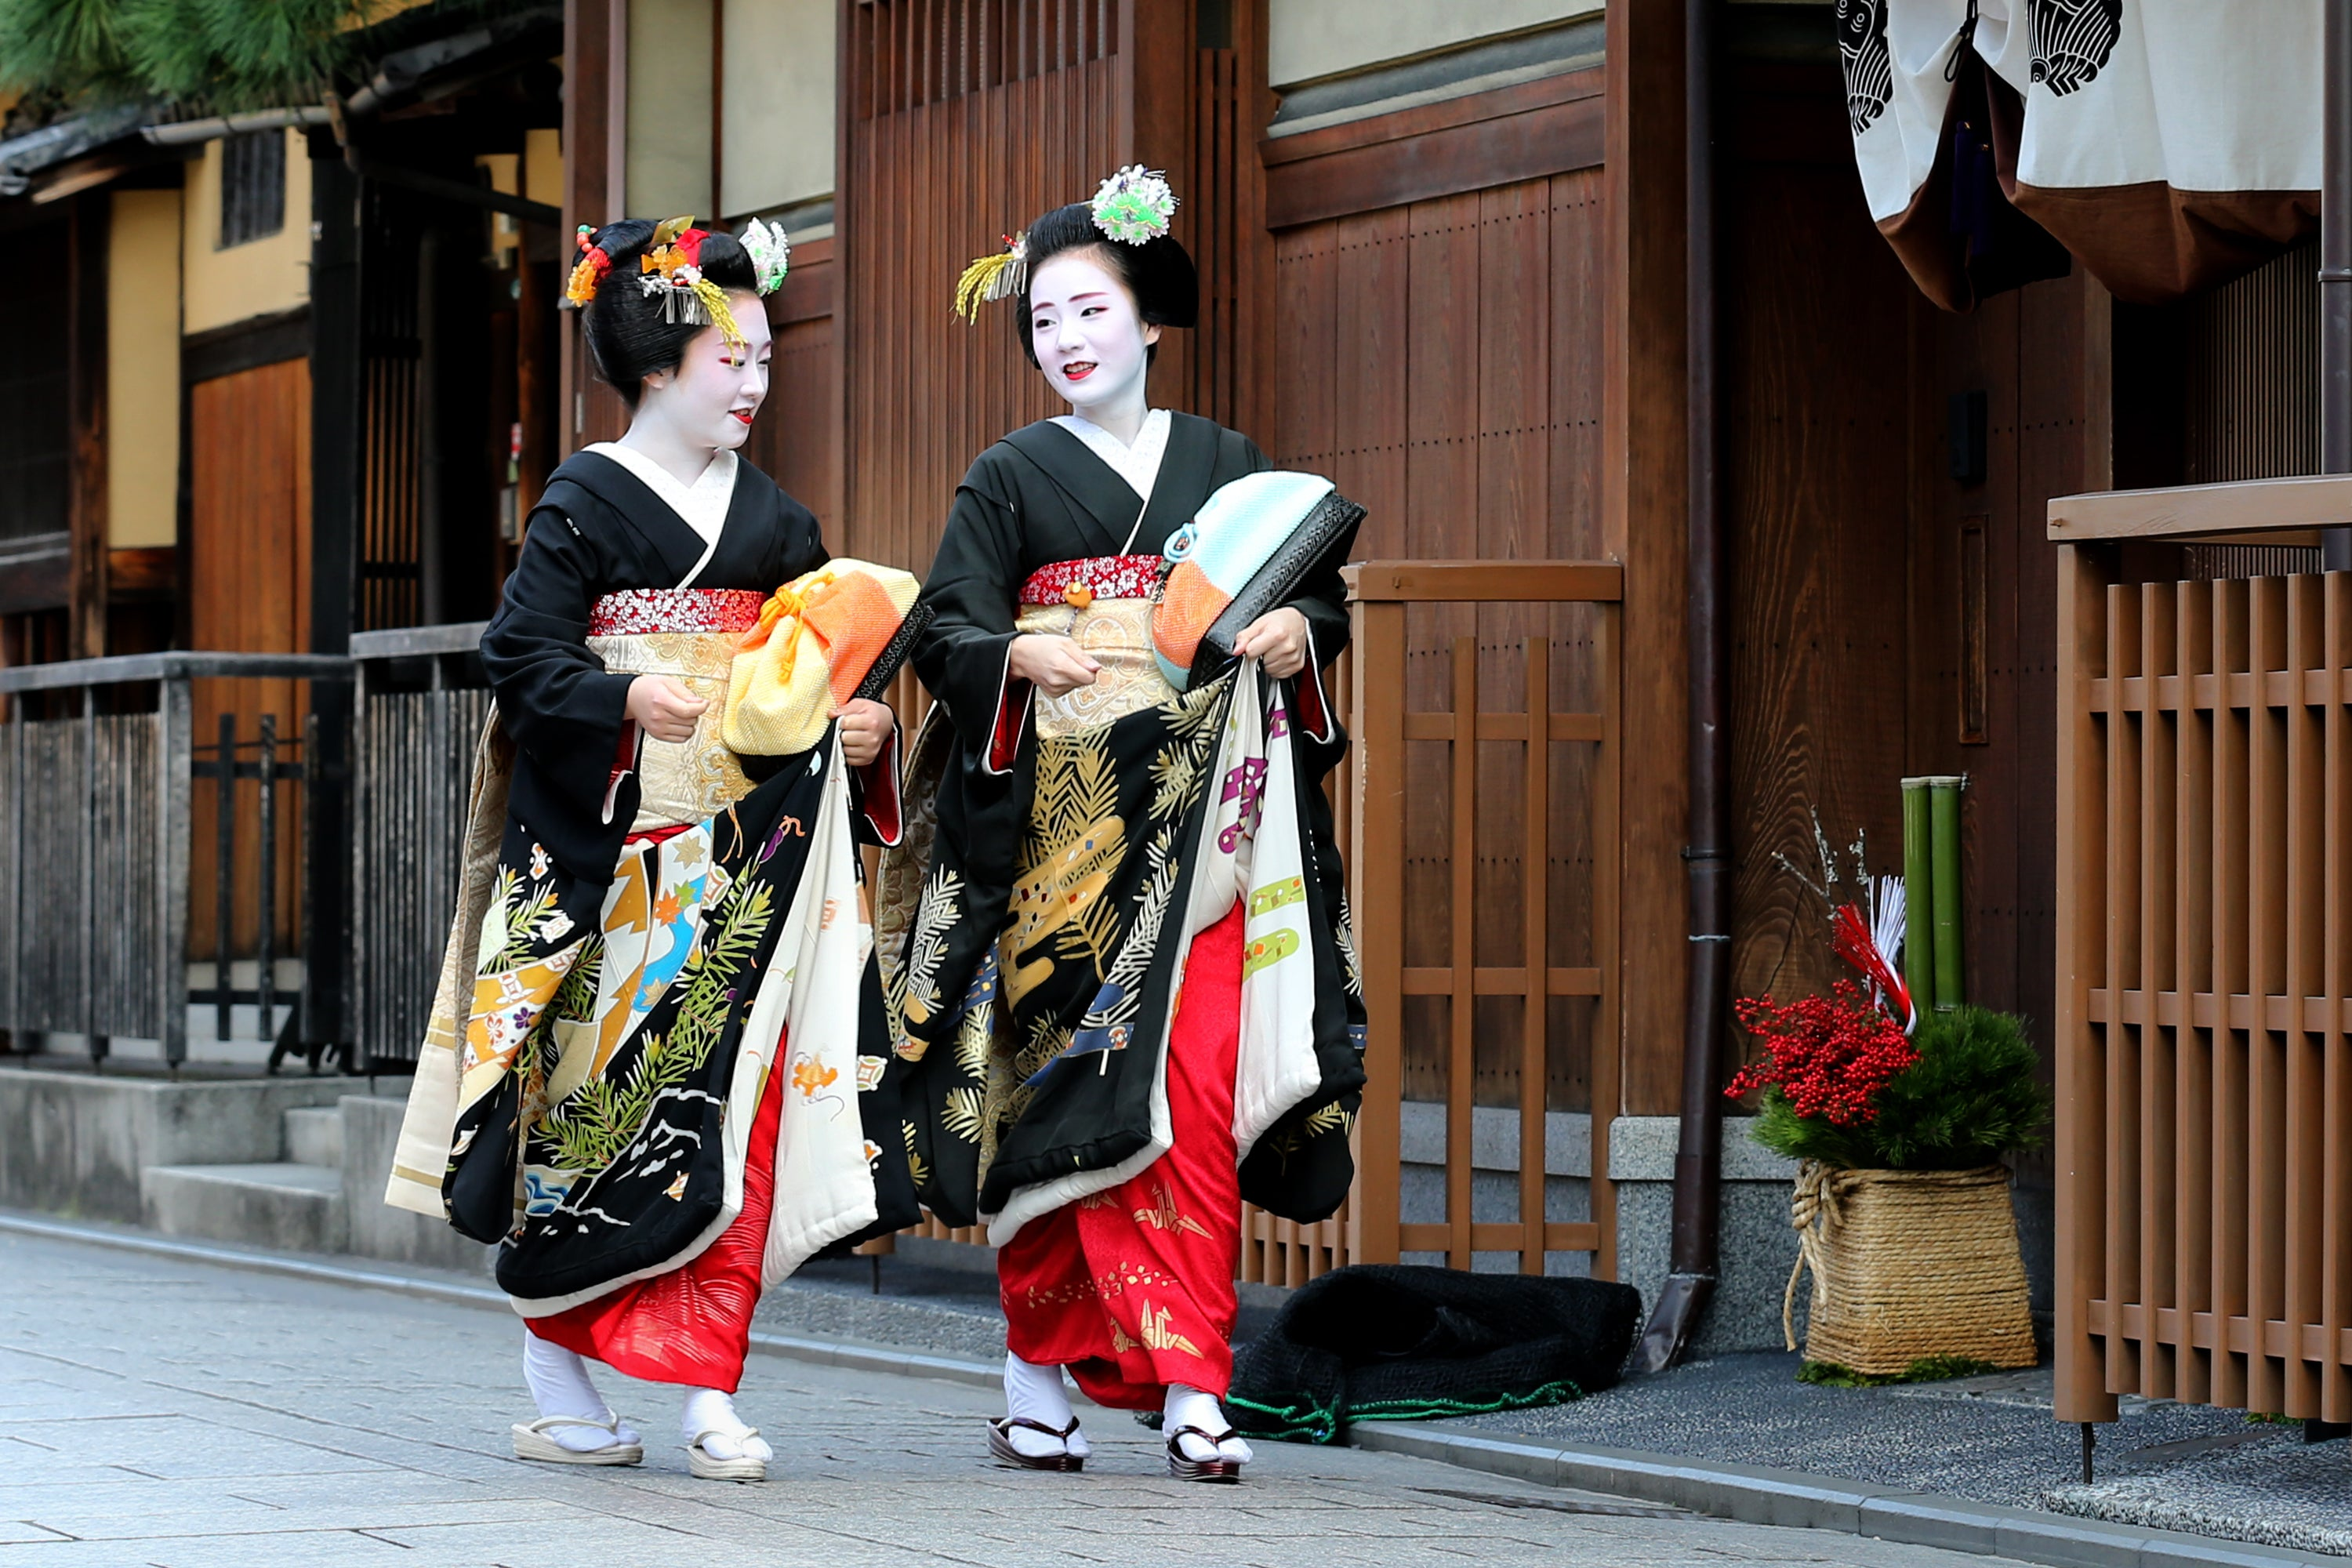 Bad Tourist Behaviour Leads To Photography Crackdown In Kyoto's Gion